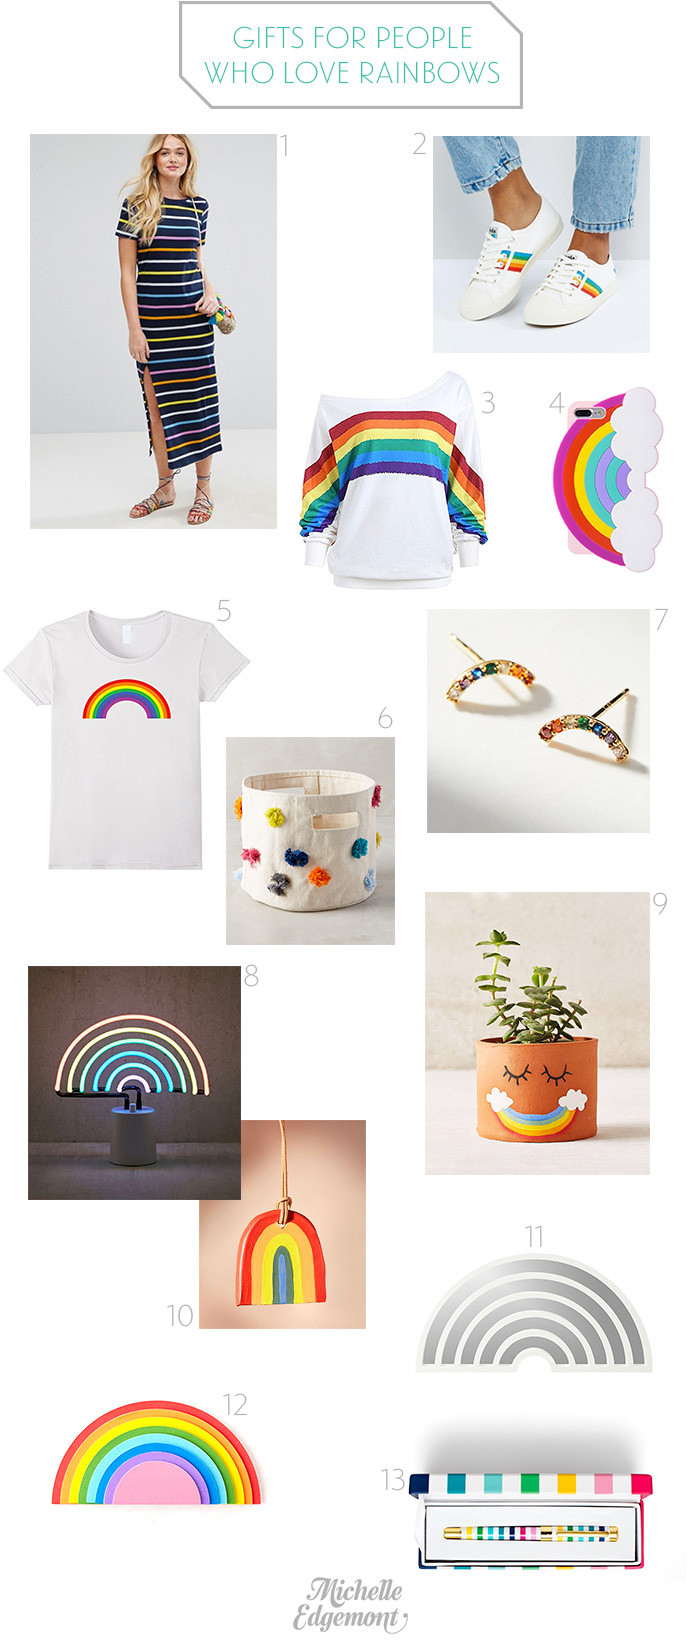 Gifts for people who love rainbows